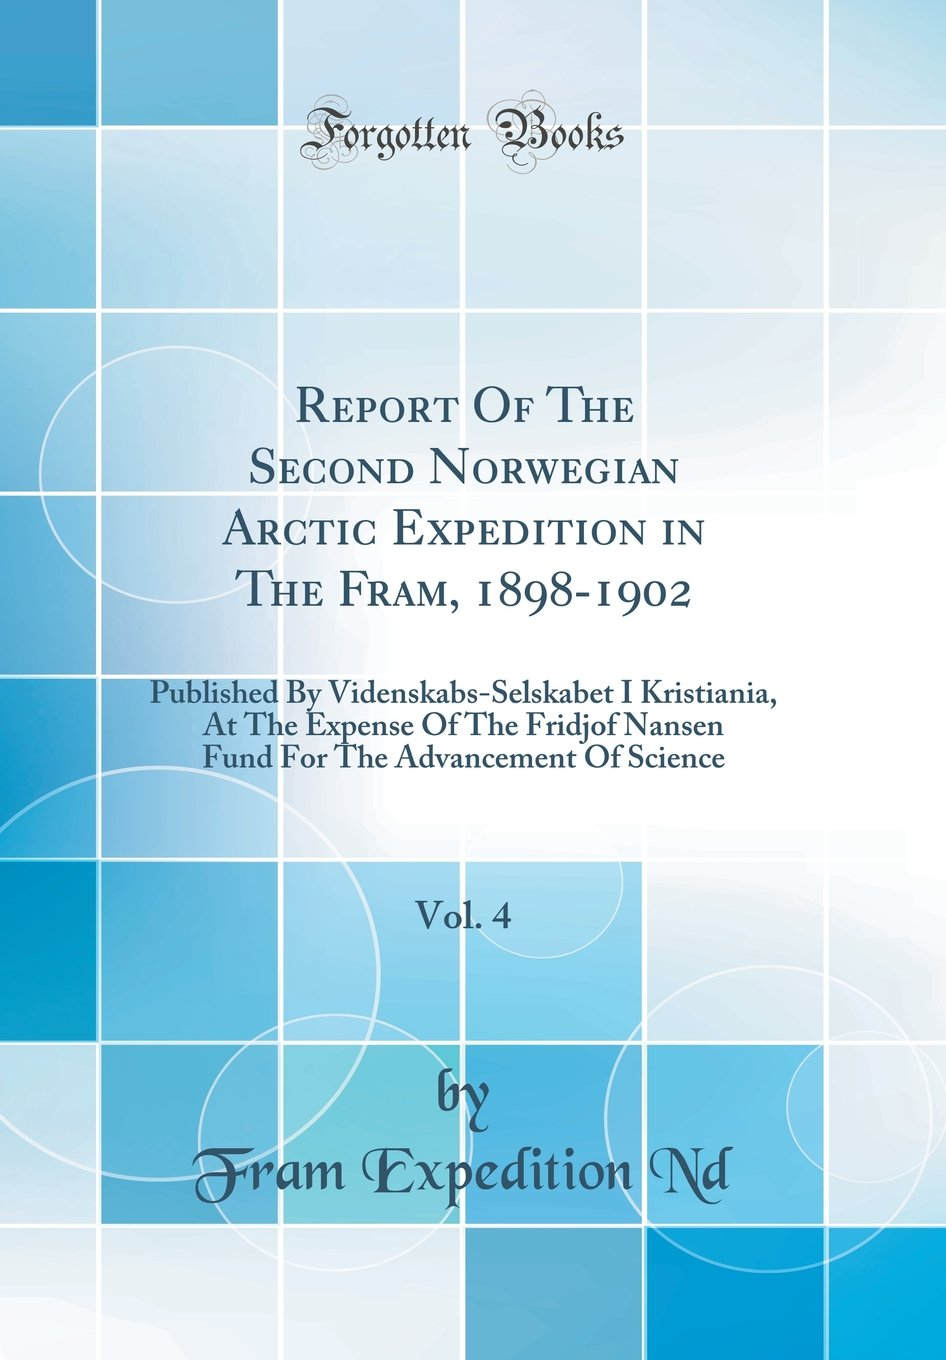 Report Of The Second Norwegian Arctic Expedition in The Fram, 1898-1902, Vol. 4: Published By Videnskabs-Selskabet I Kristiania, At The Expense Of The ... Of Science (Classic Reprint) (German Edition) pdf